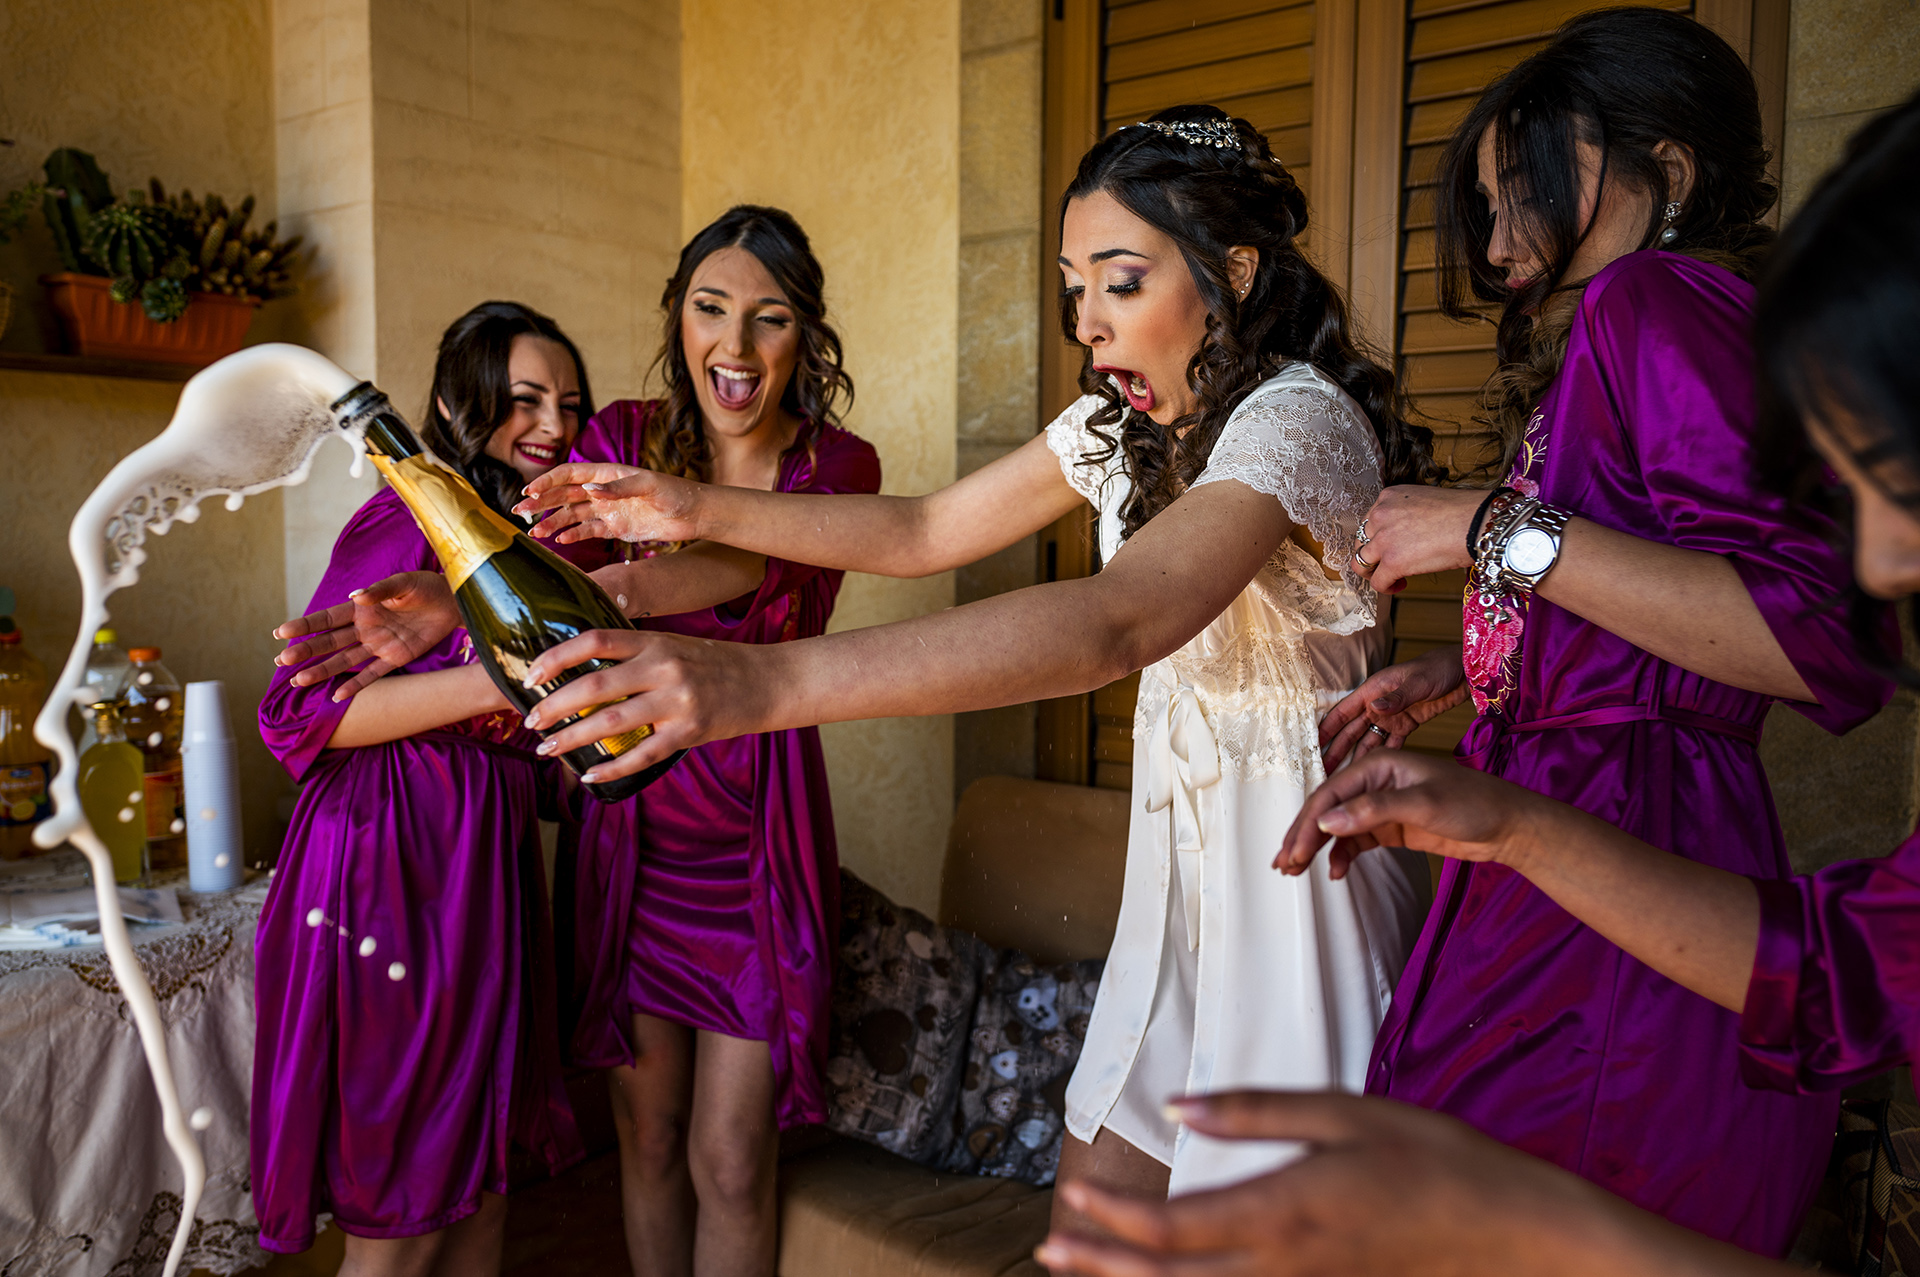 The bride and bridal party are shocked as the bottle of champagne pops open while they are getting ready for the wedding.